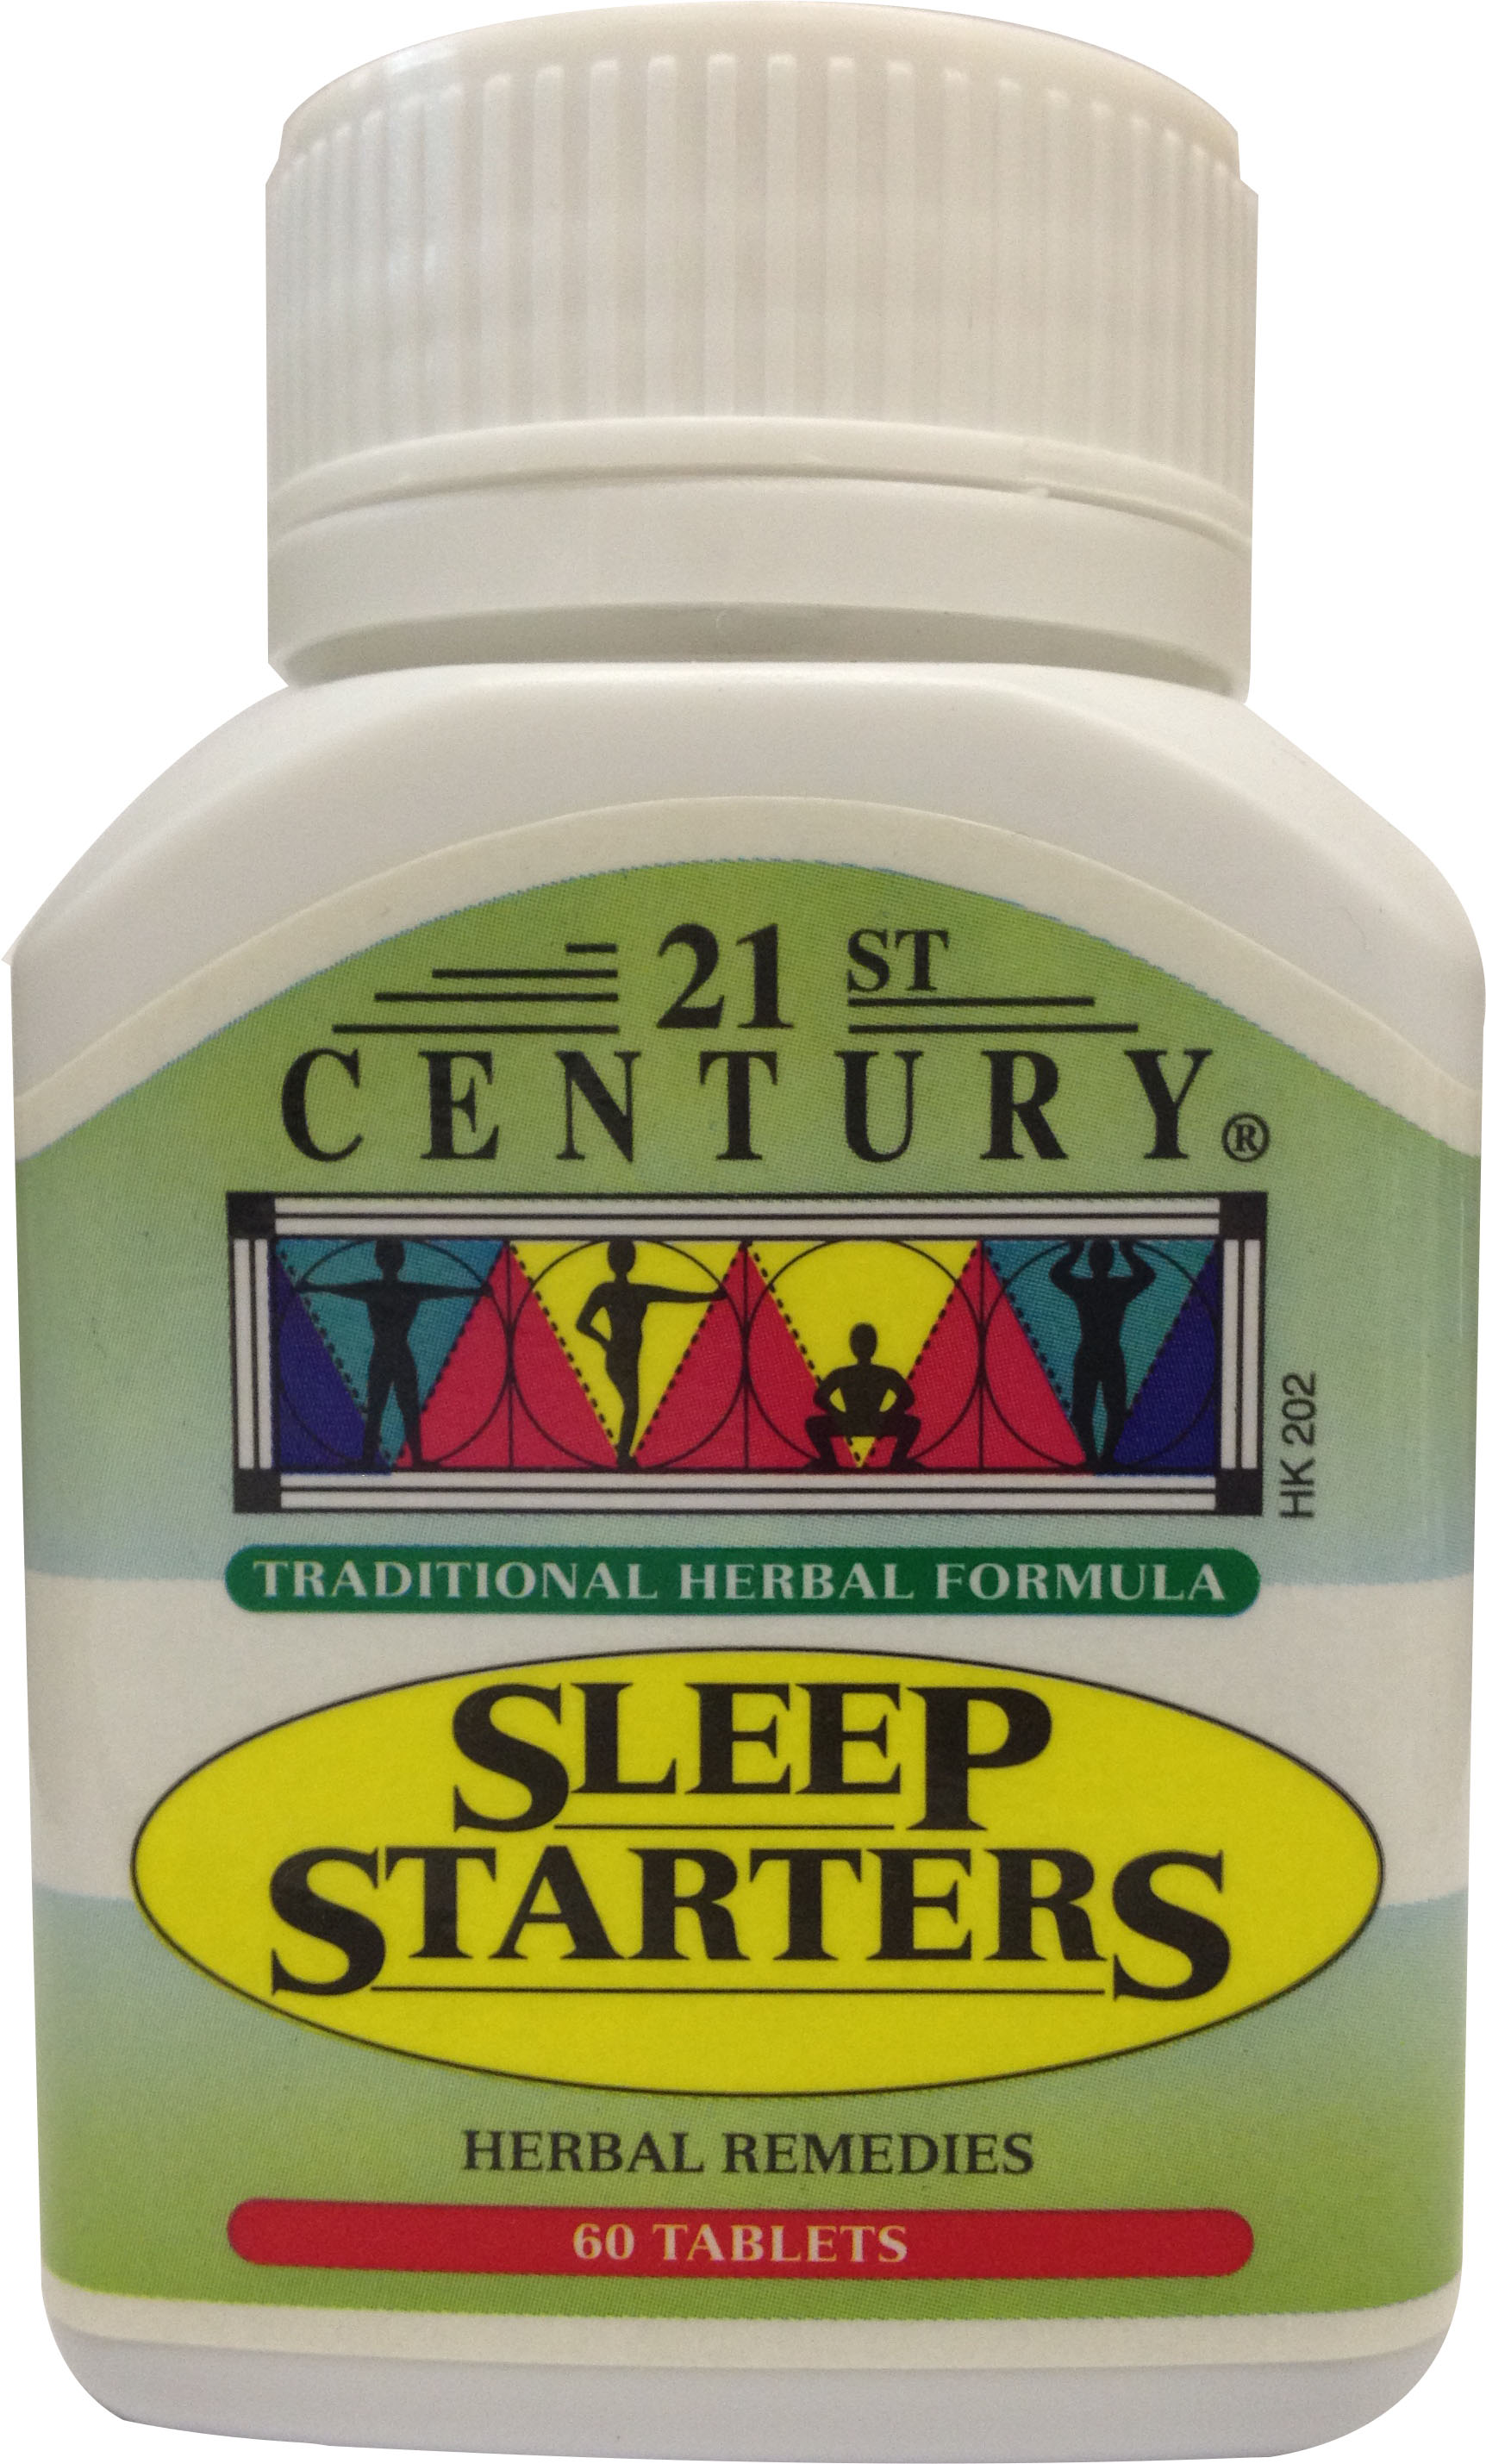 SLEEP STARTERS, Helps you to go to sleep quickly